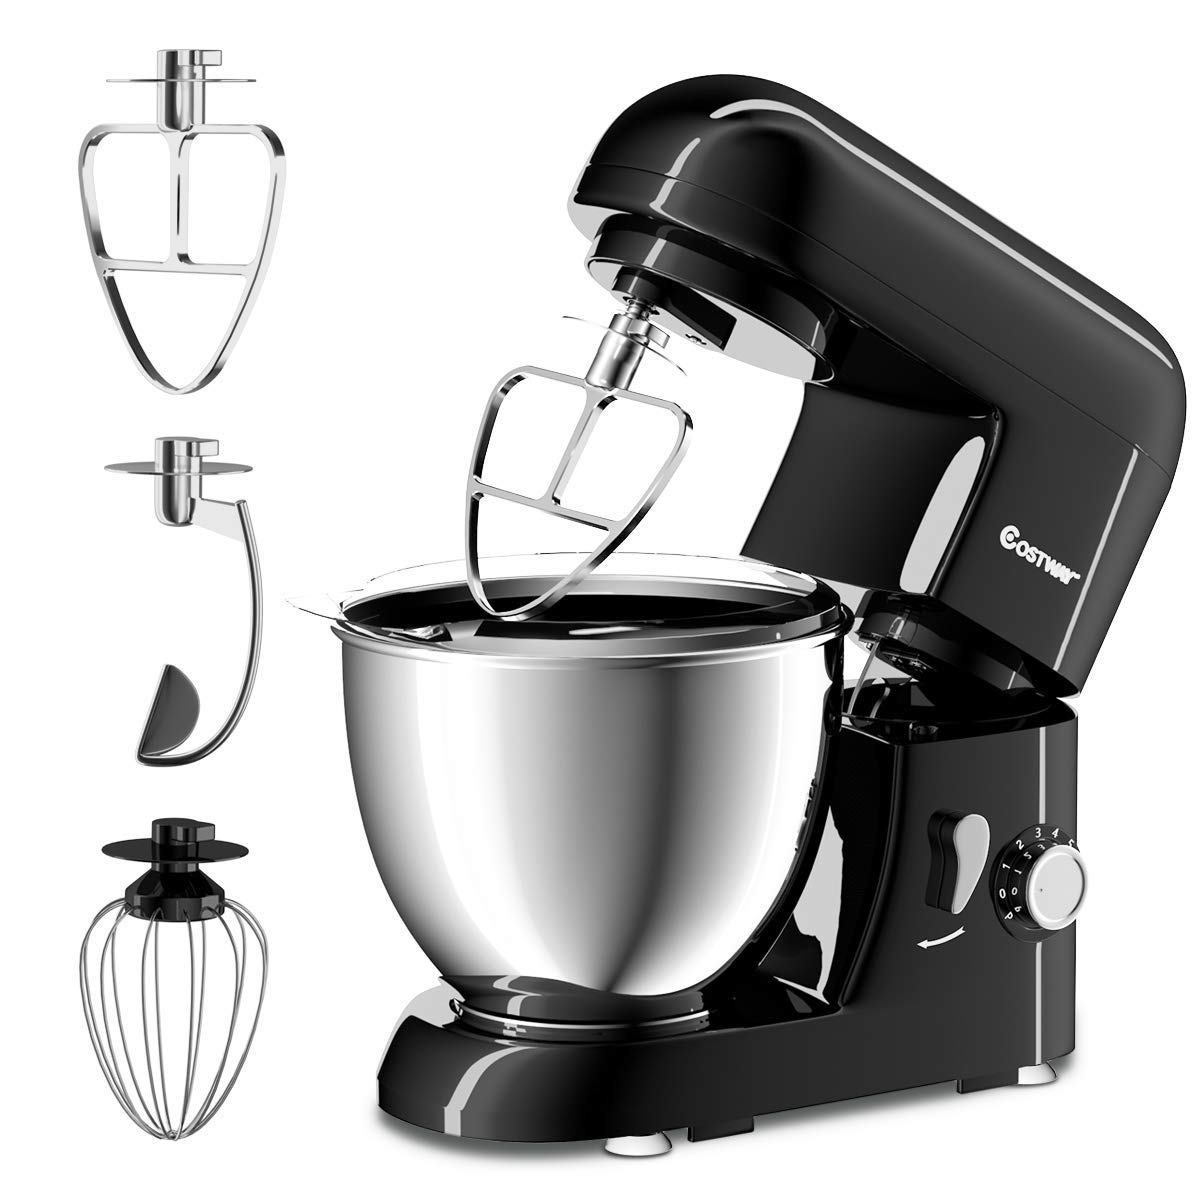 COSTWAY Stand Mixer 4.3 Quart 6-Speed 120V/550W Kitchenaid 3 Attachments Offer Tilt-head Electric Food Mixer w/Stainless Steel Bowl (Painted-Black) by COSTWAY